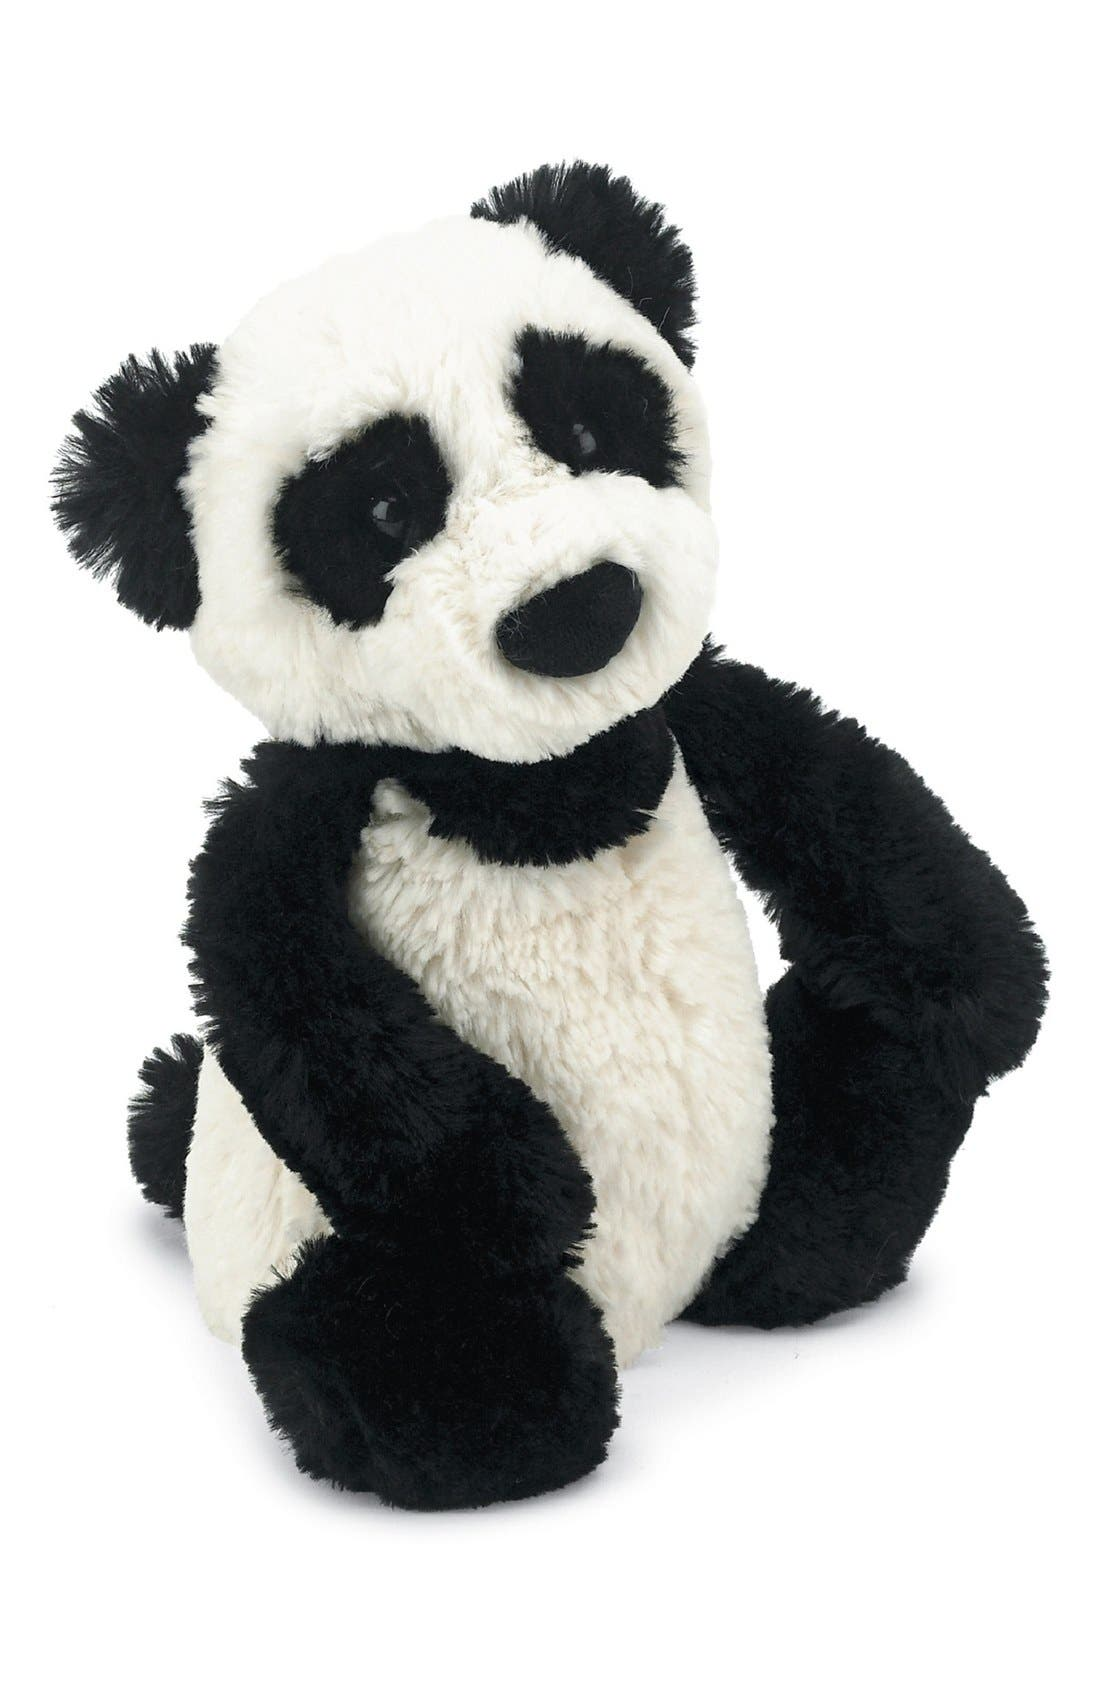 Jellycat 'Medium Bashful Panda' Stuffed Animal